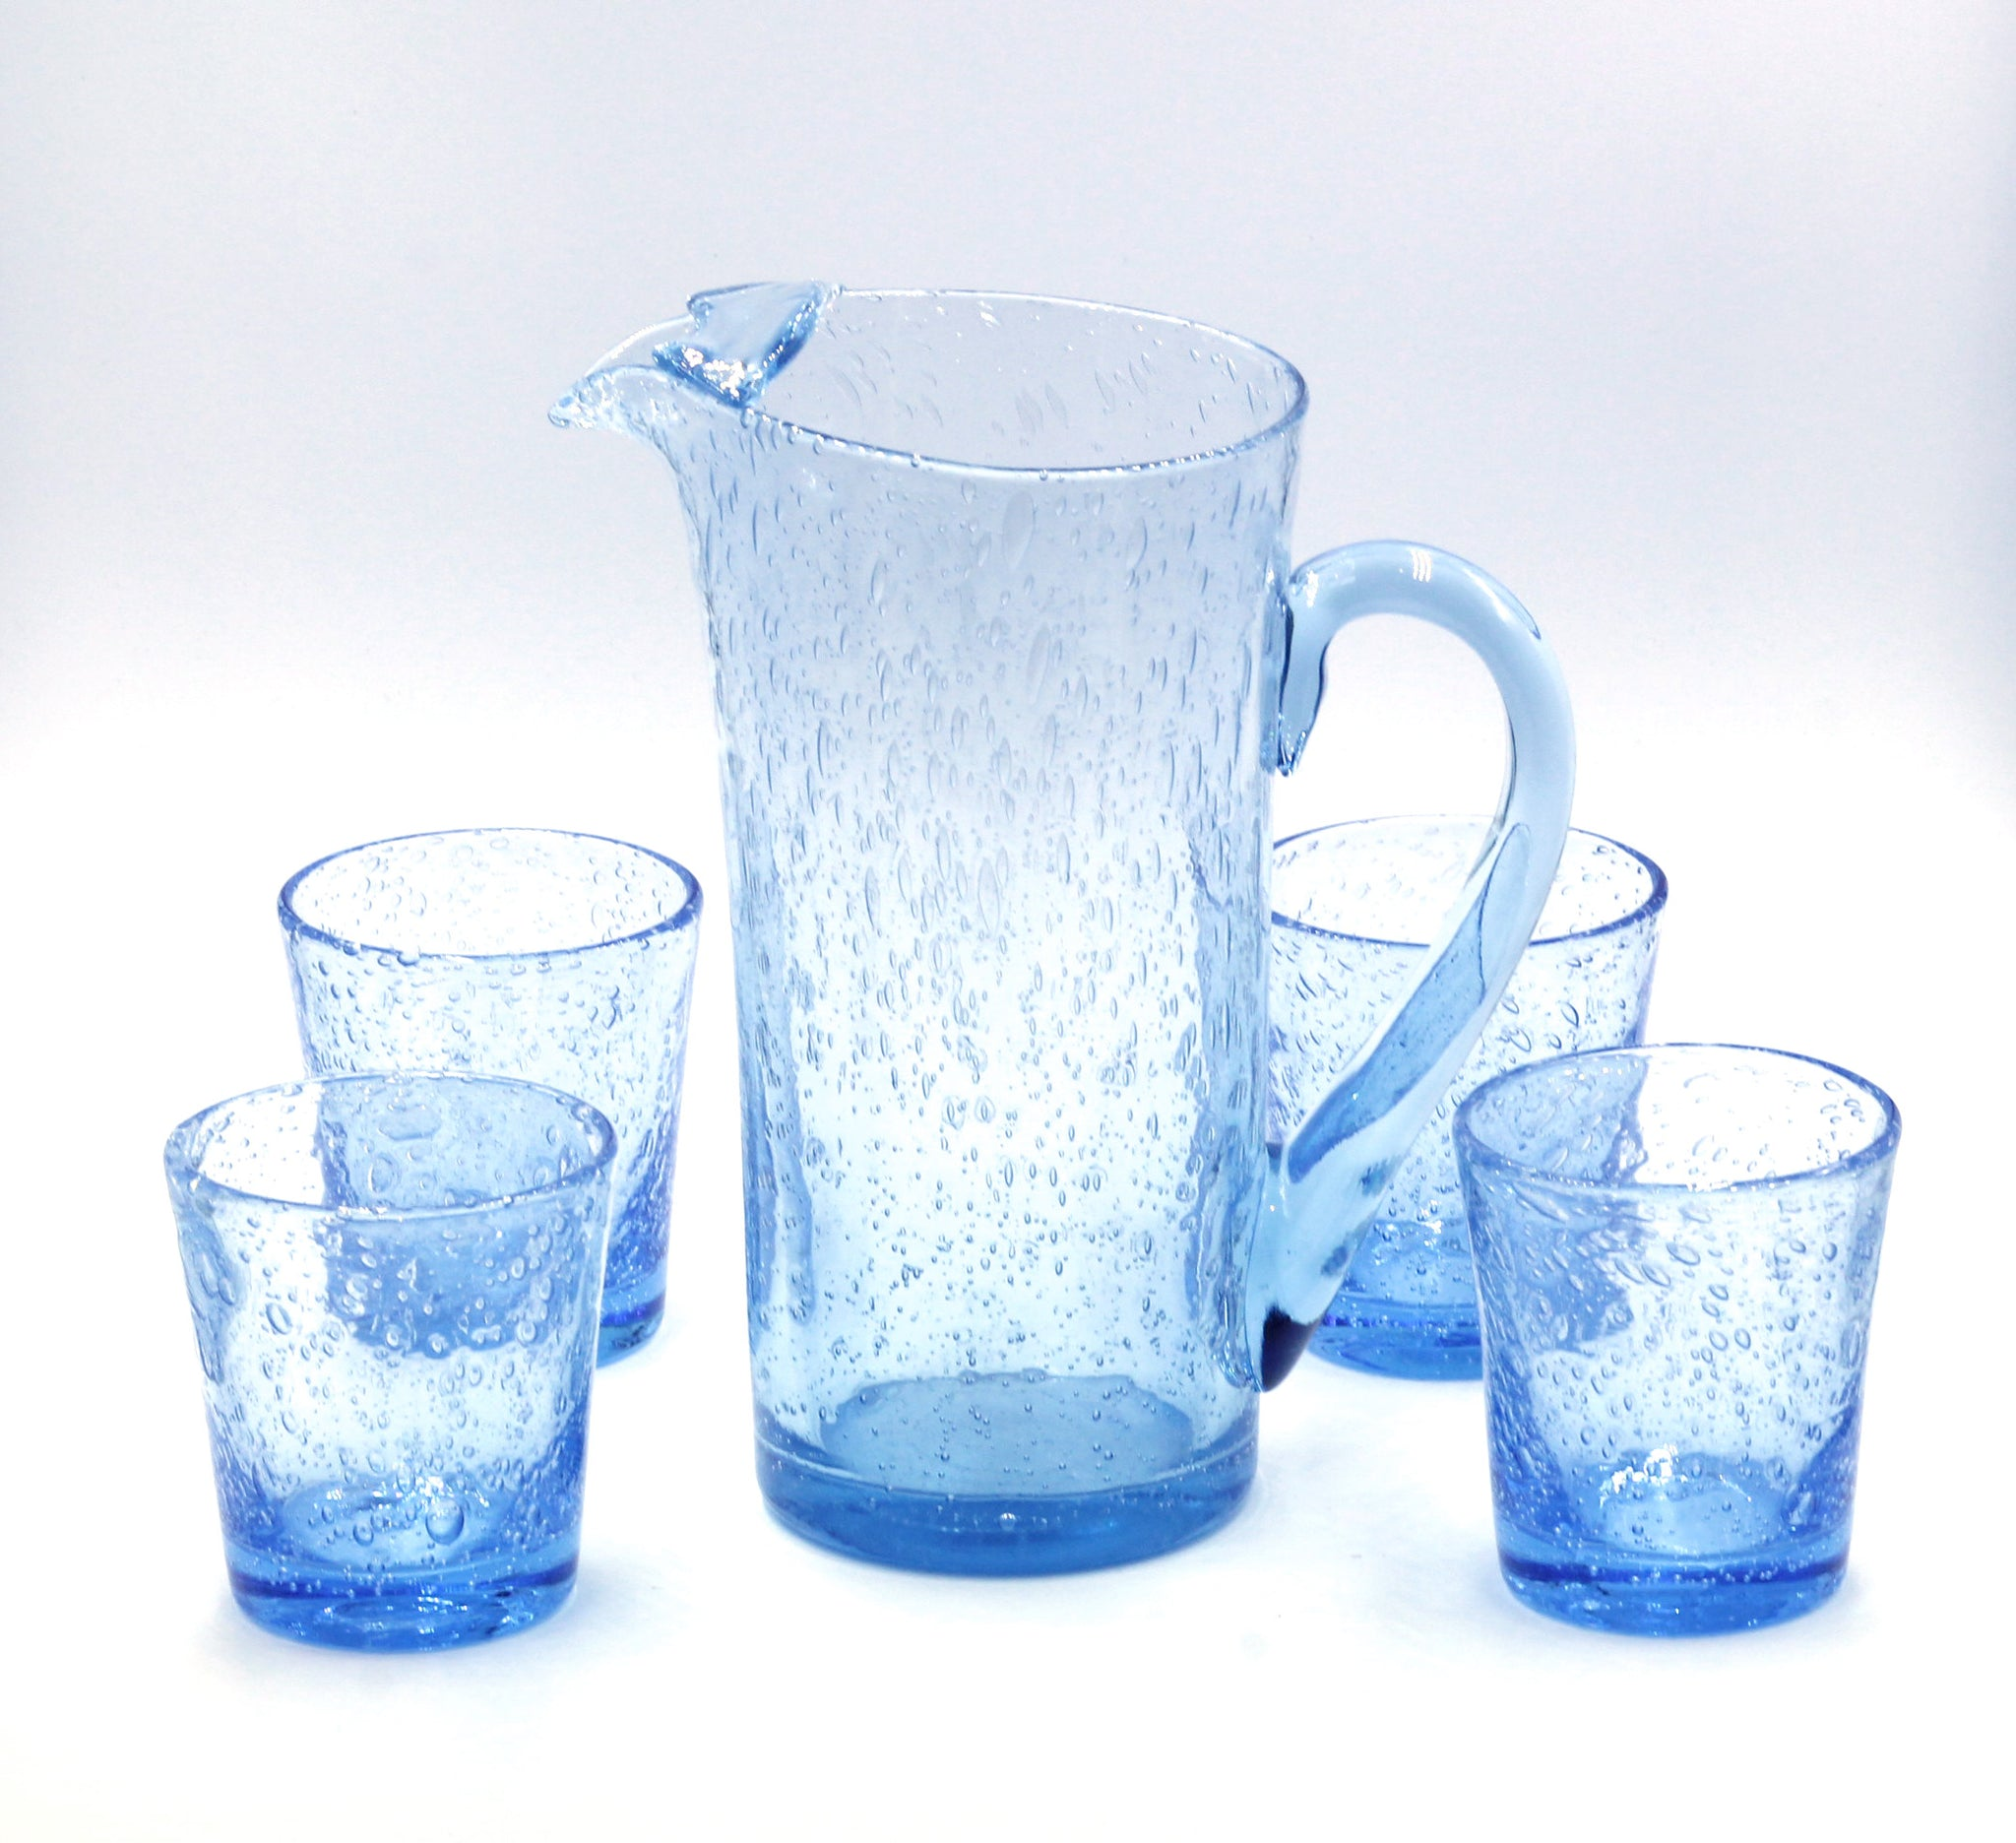 Biot Hand-Blown Glass Pitcher and Cups